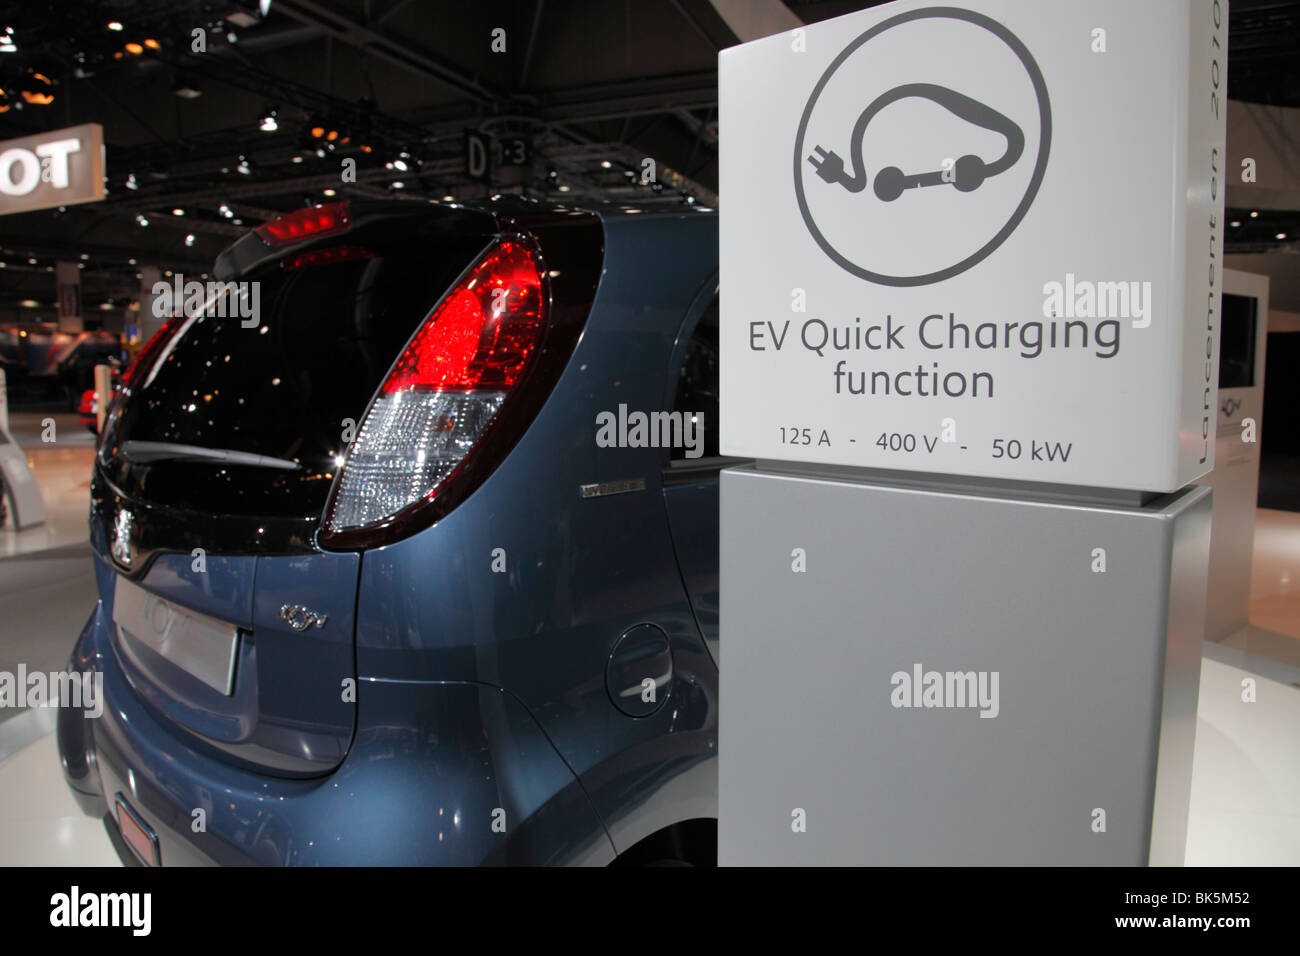 PEUGEOT iOn with EV Quick Charging function an electric car at the Motor Show 2010 in Leipzig, Germany - Stock Image